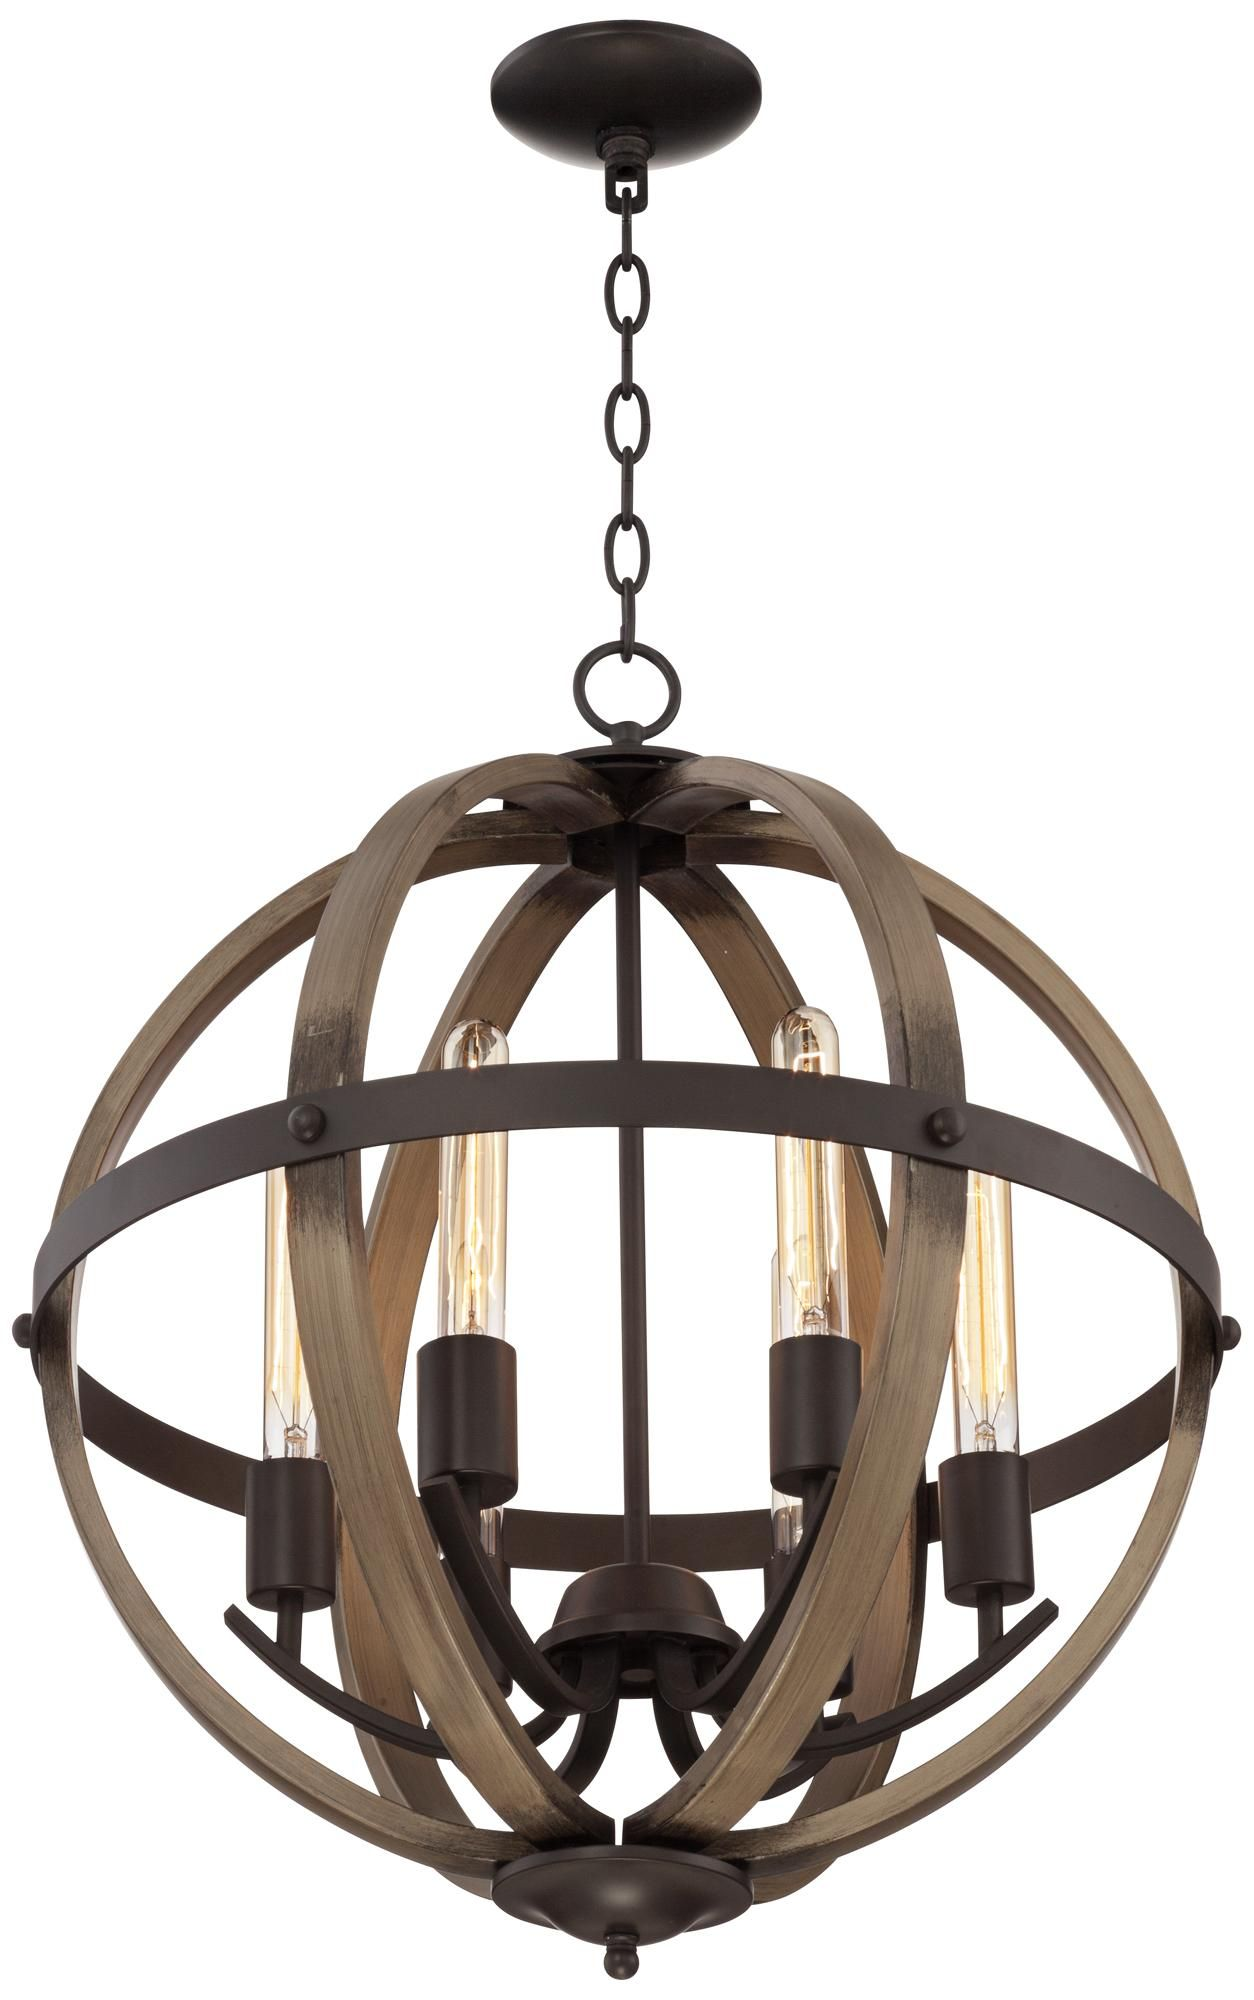 productdetail rubbed weathered and bronze oil dark lumiere four feiss oak htm hover orb chandelier to light zoom